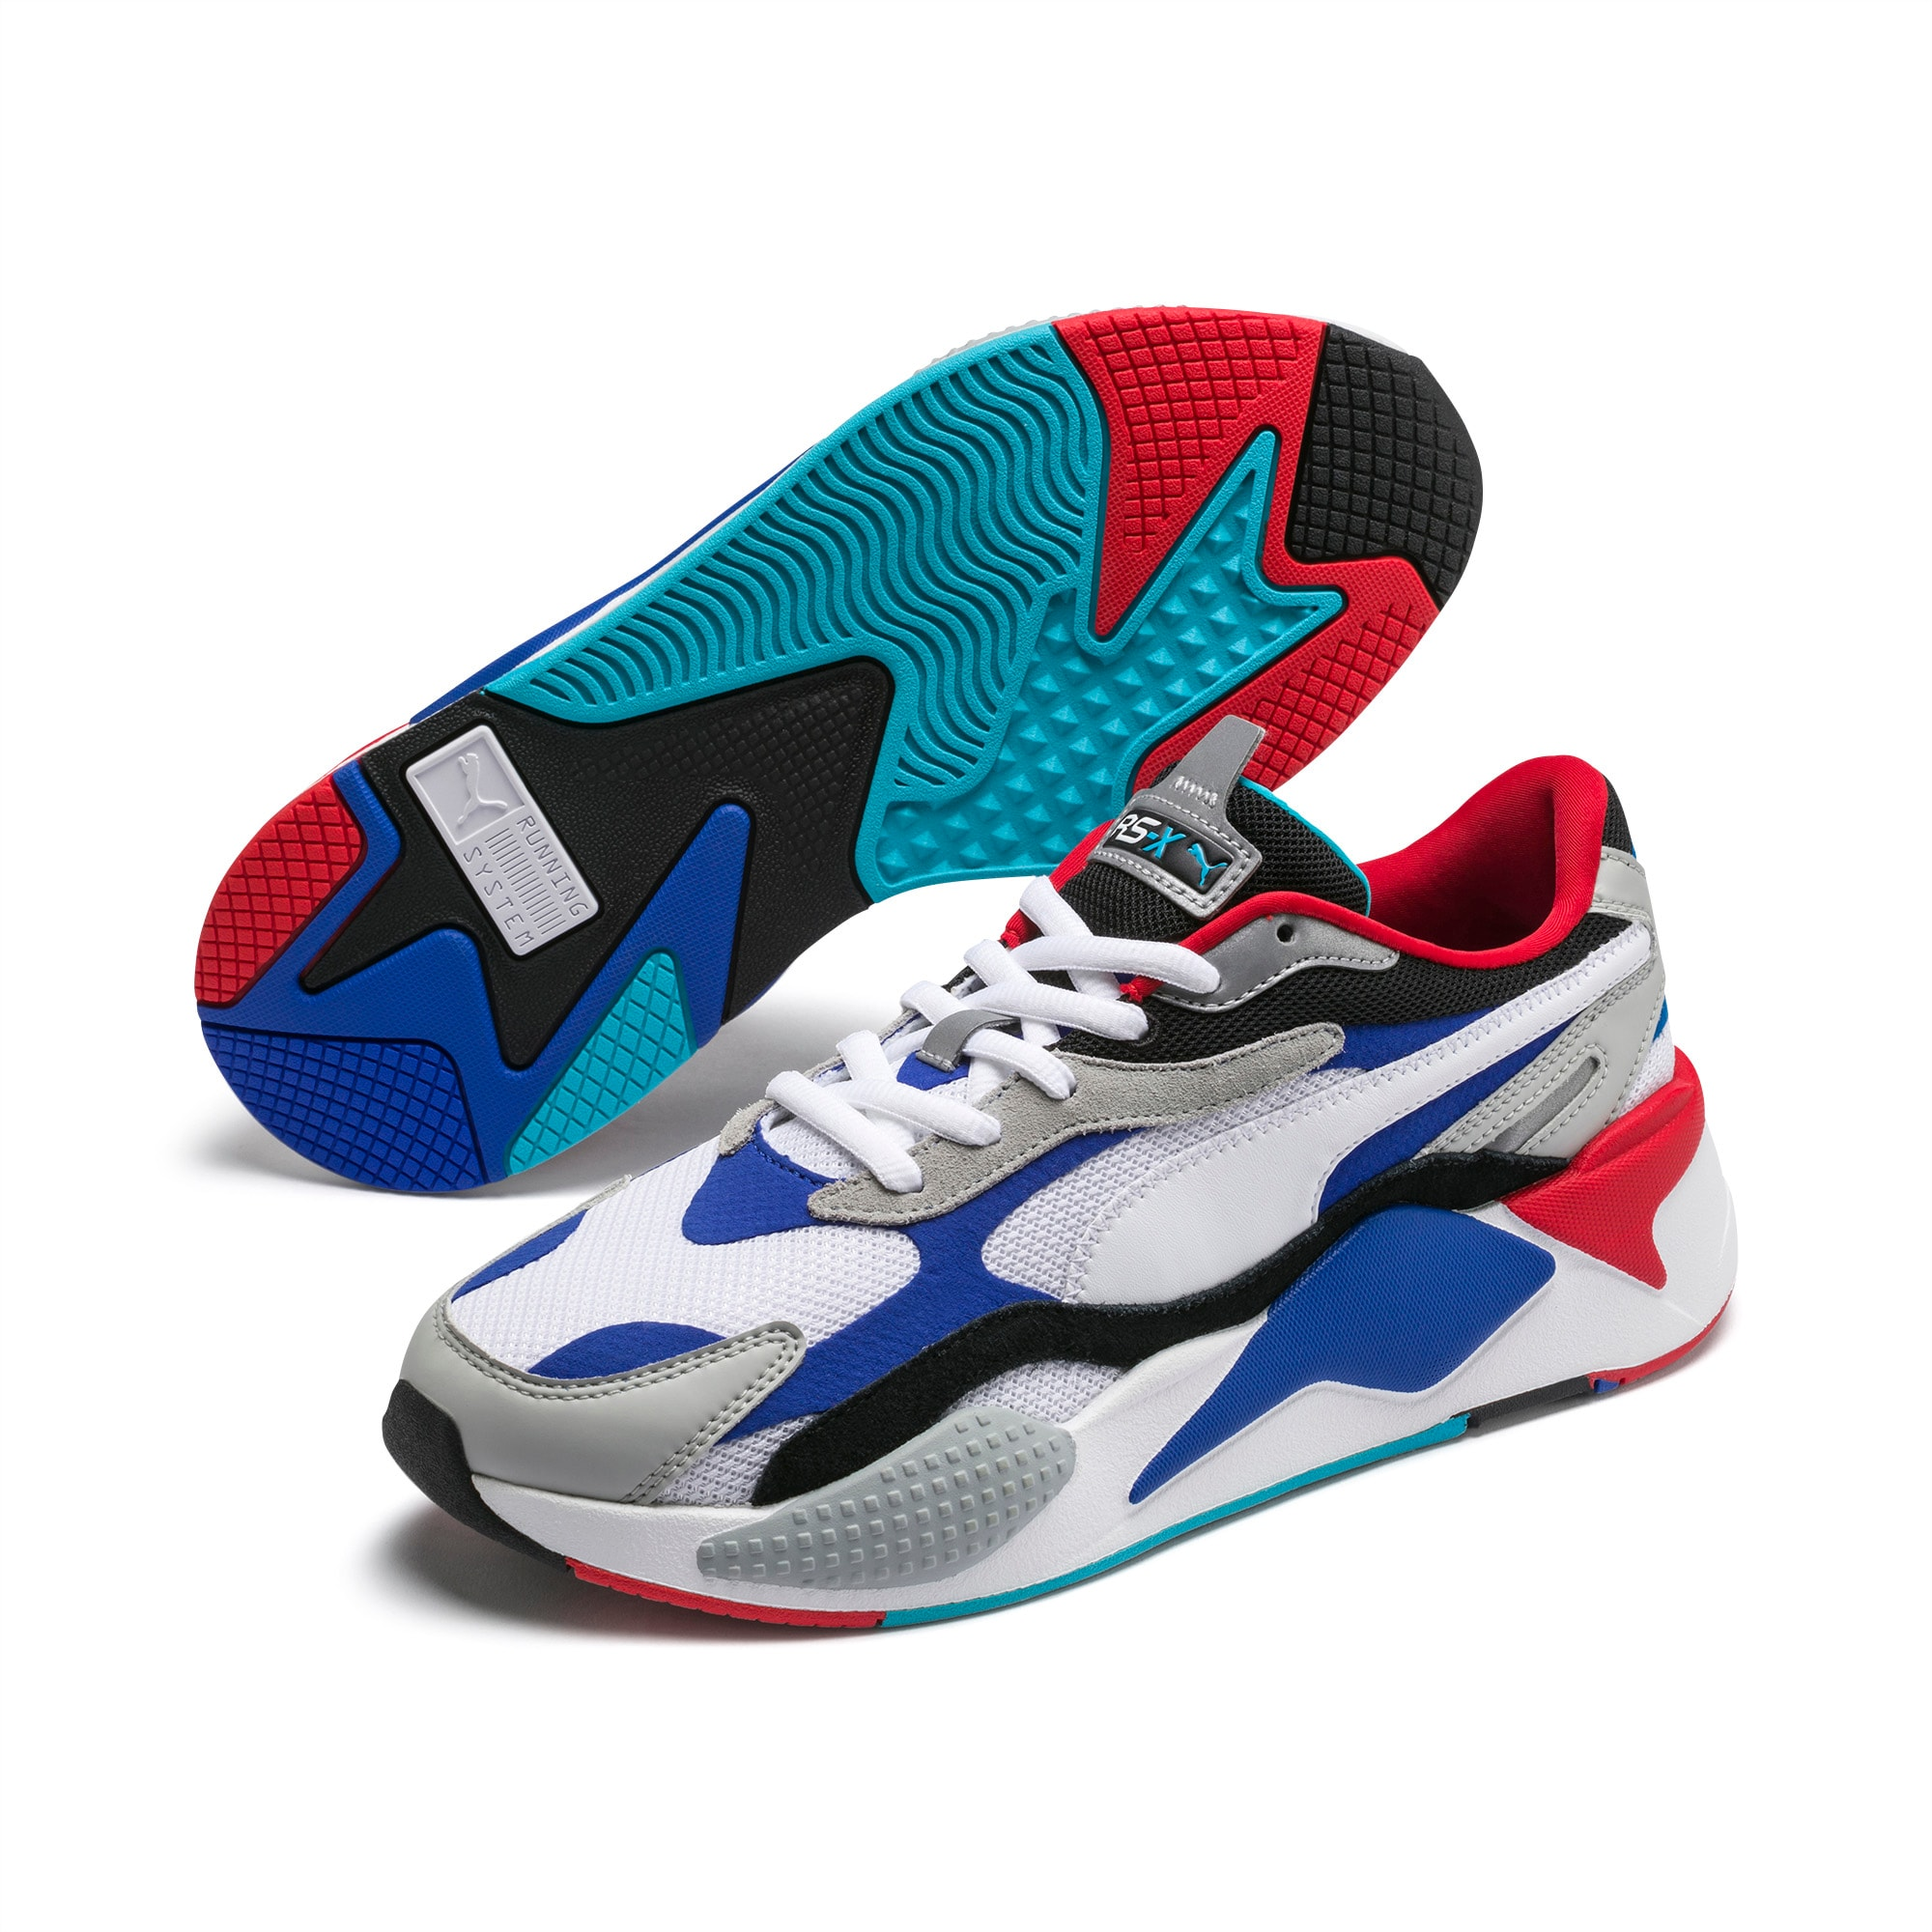 PUMA Rs X Puzzle Trainers in WhiteLava